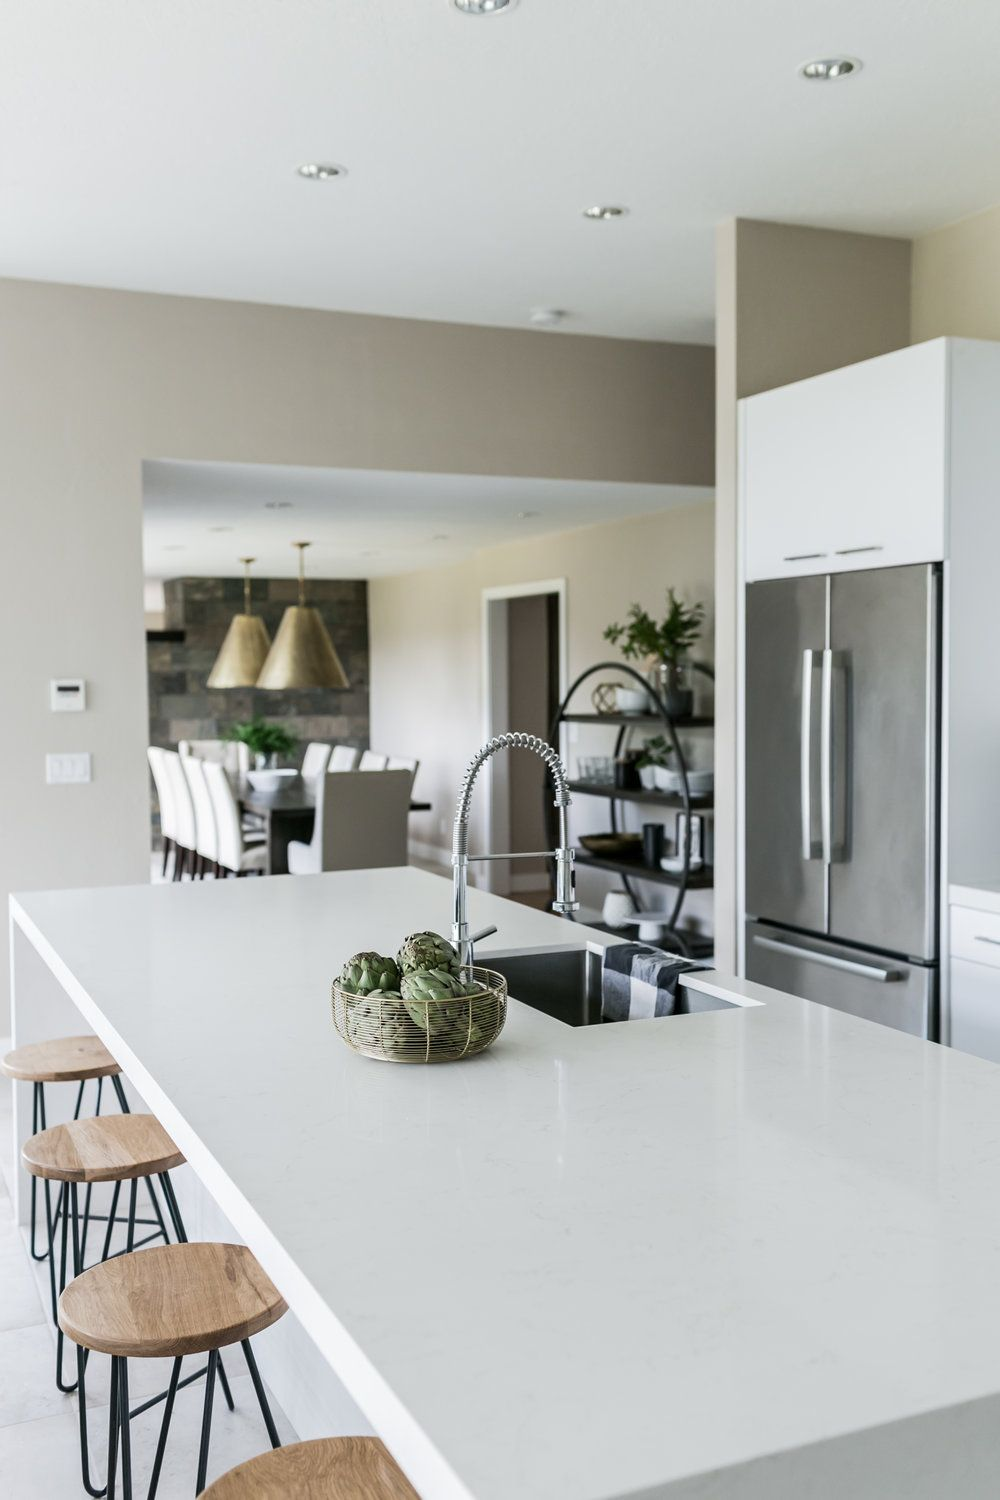 Interior Design Of Kitchen Room: Corvallis Minimal Industrial / Before & Afters